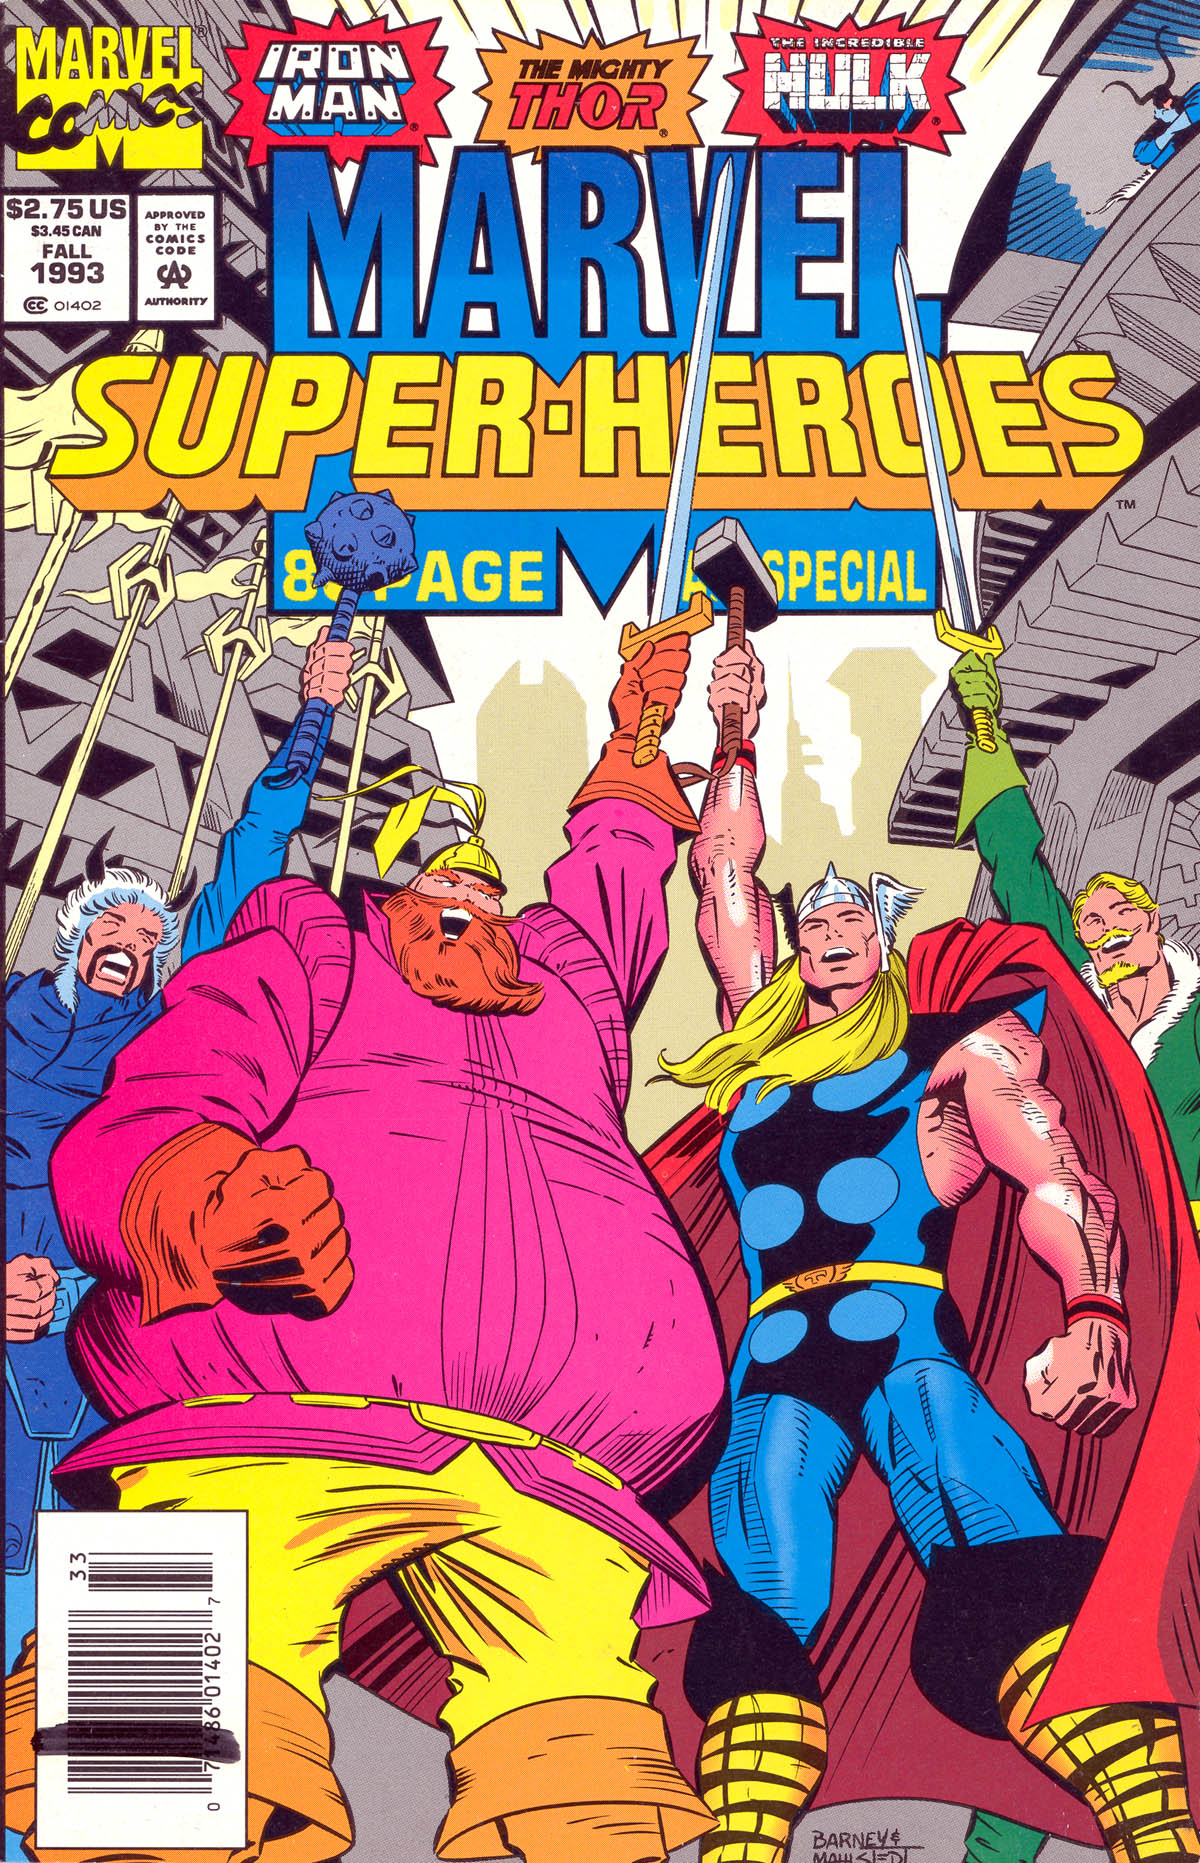 Marvel Super Heroes (1990) #15, cover penciled by Joe Barney & inked by Larry Mahlstedt.